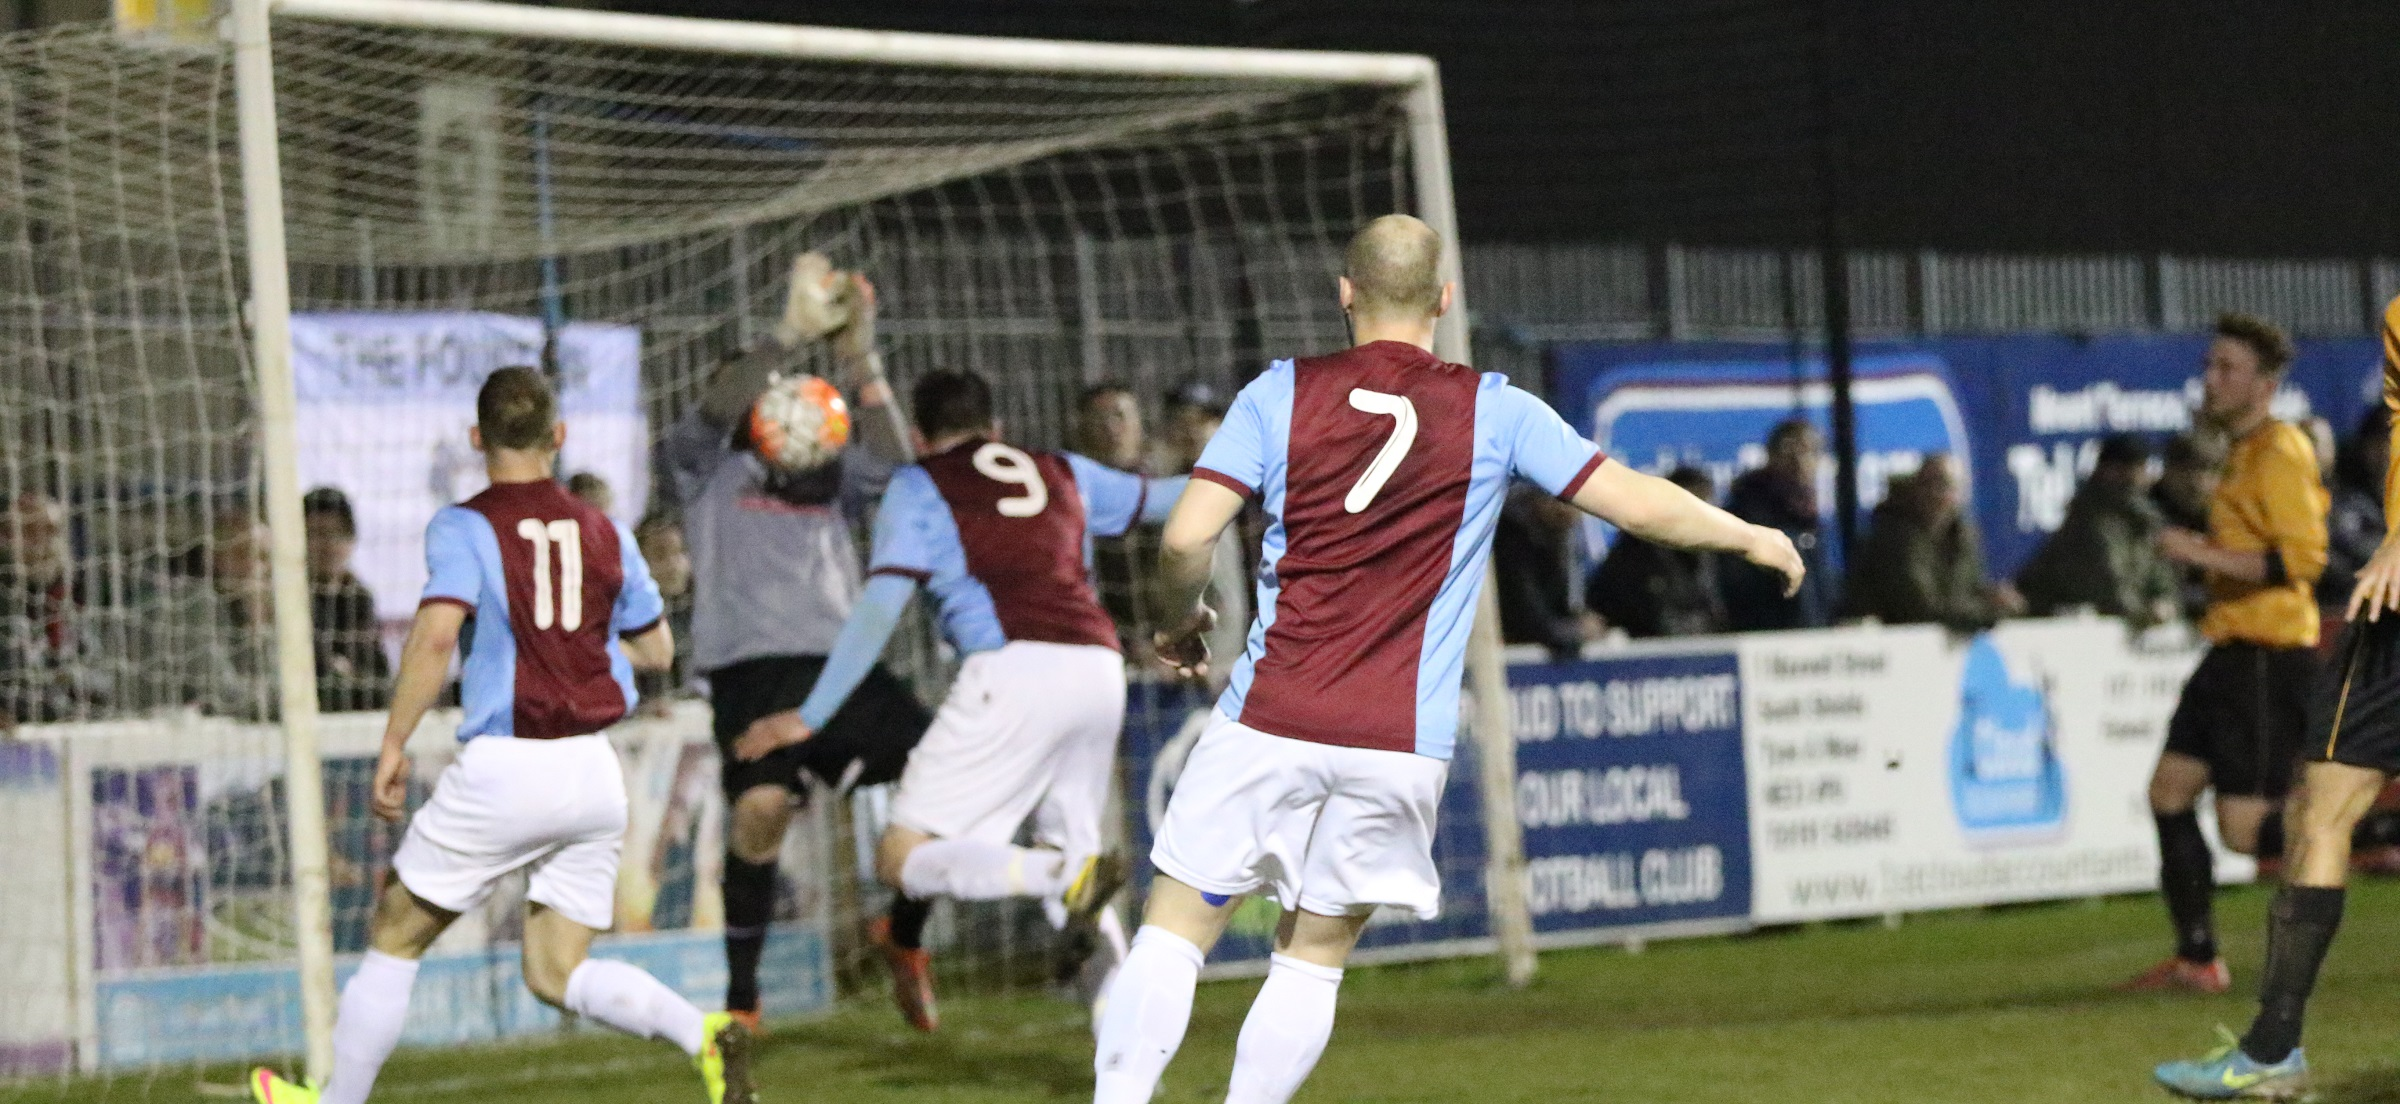 In Pictures: South Shields 5-0 Crook Town